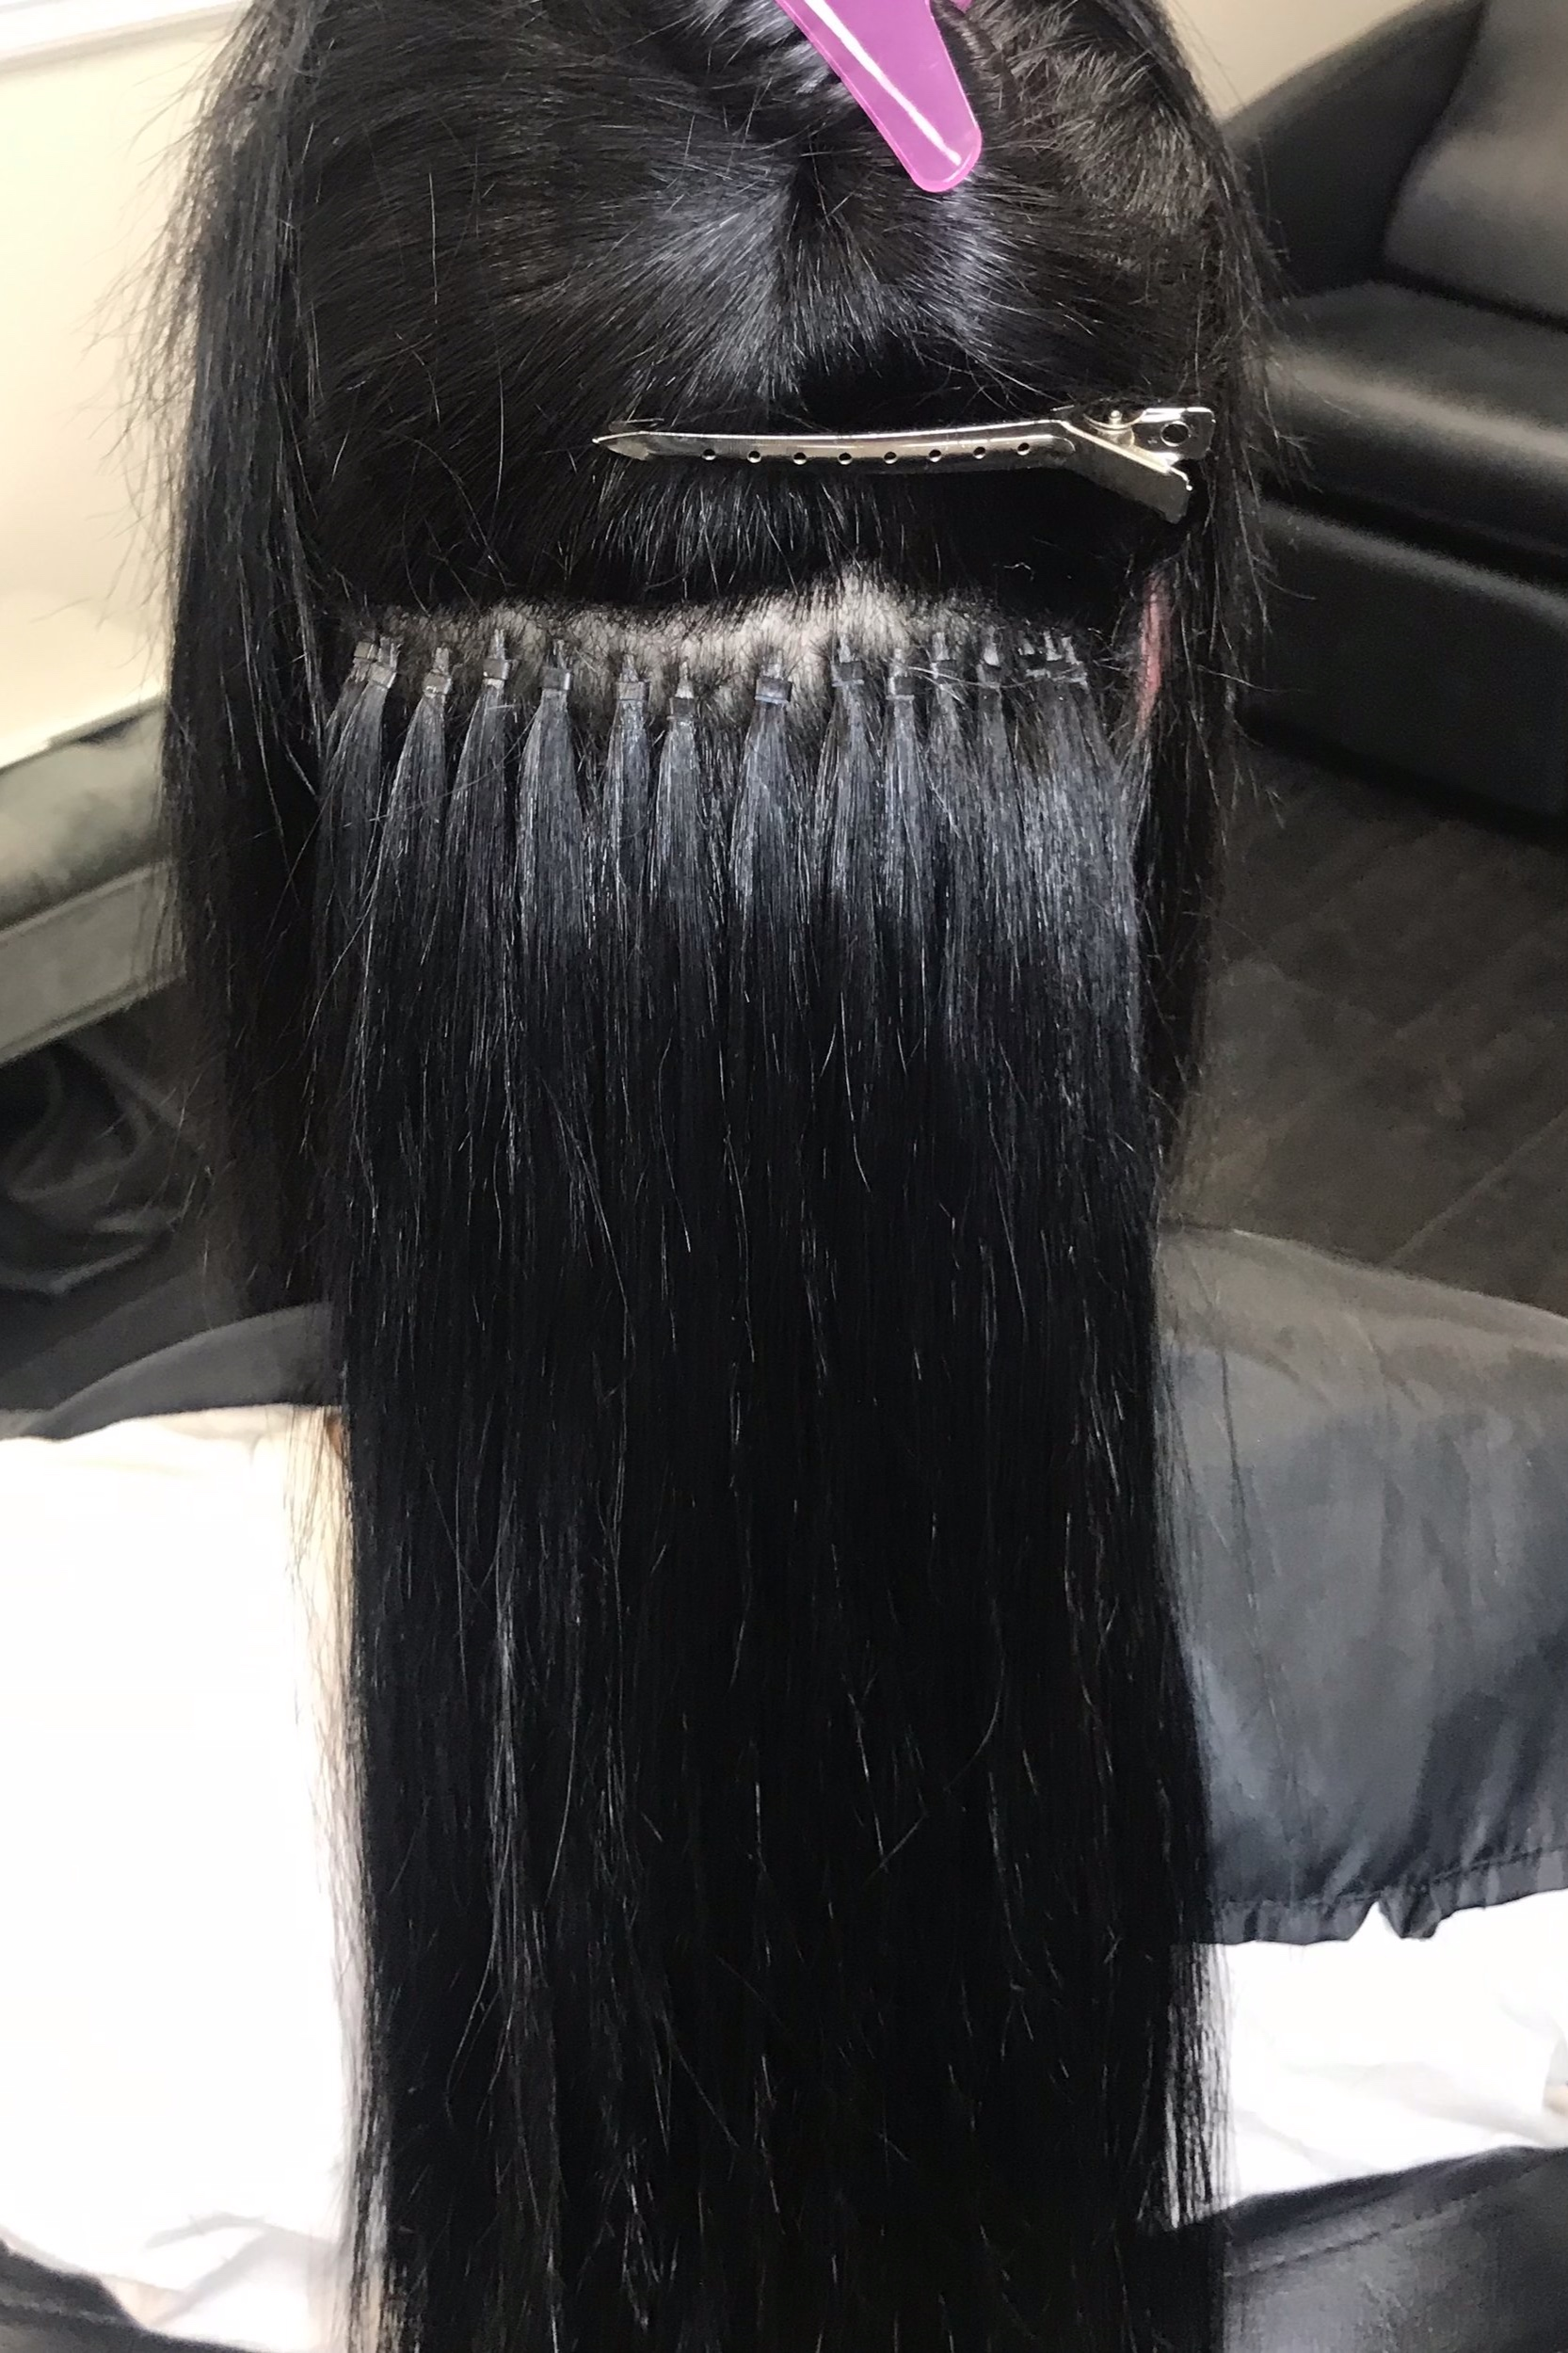 Microlinks A Safer Approach To Hair Extensions